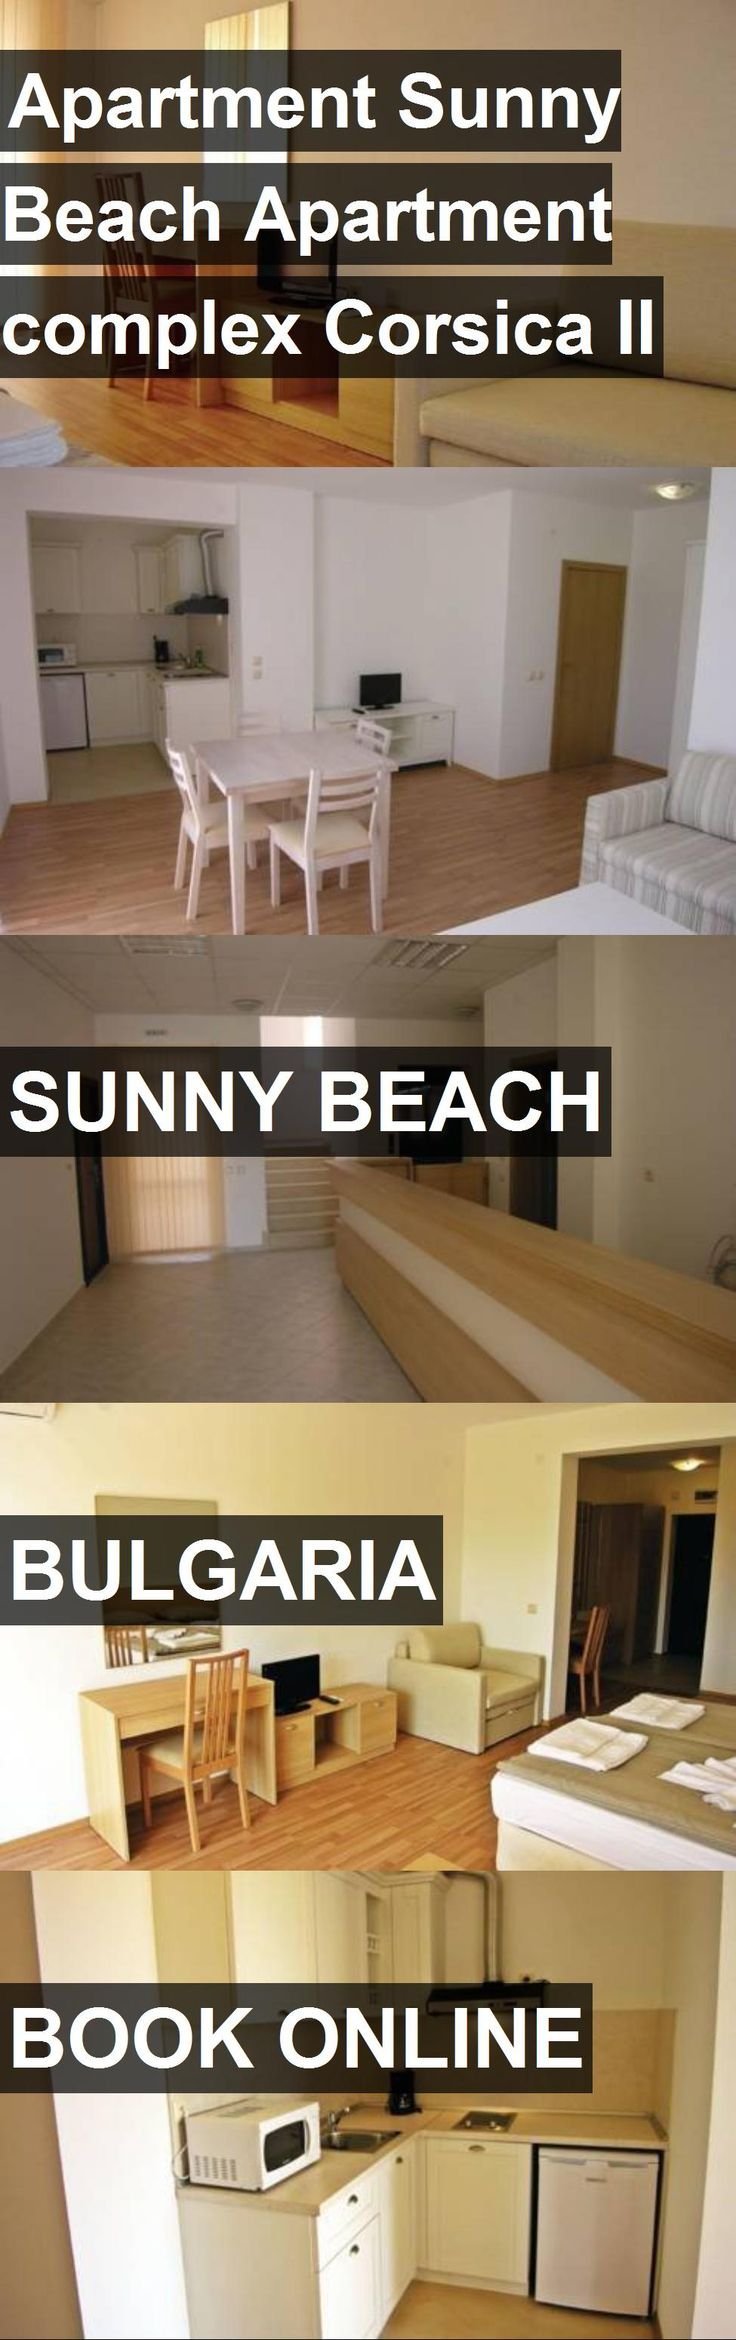 Apartment Sunny Beach Apartment complex Corsica II in Sunny Beach, Bulgaria. For more information, photos, reviews and best prices please follow the link. #Bulgaria #SunnyBeach #travel #vacation #apartment